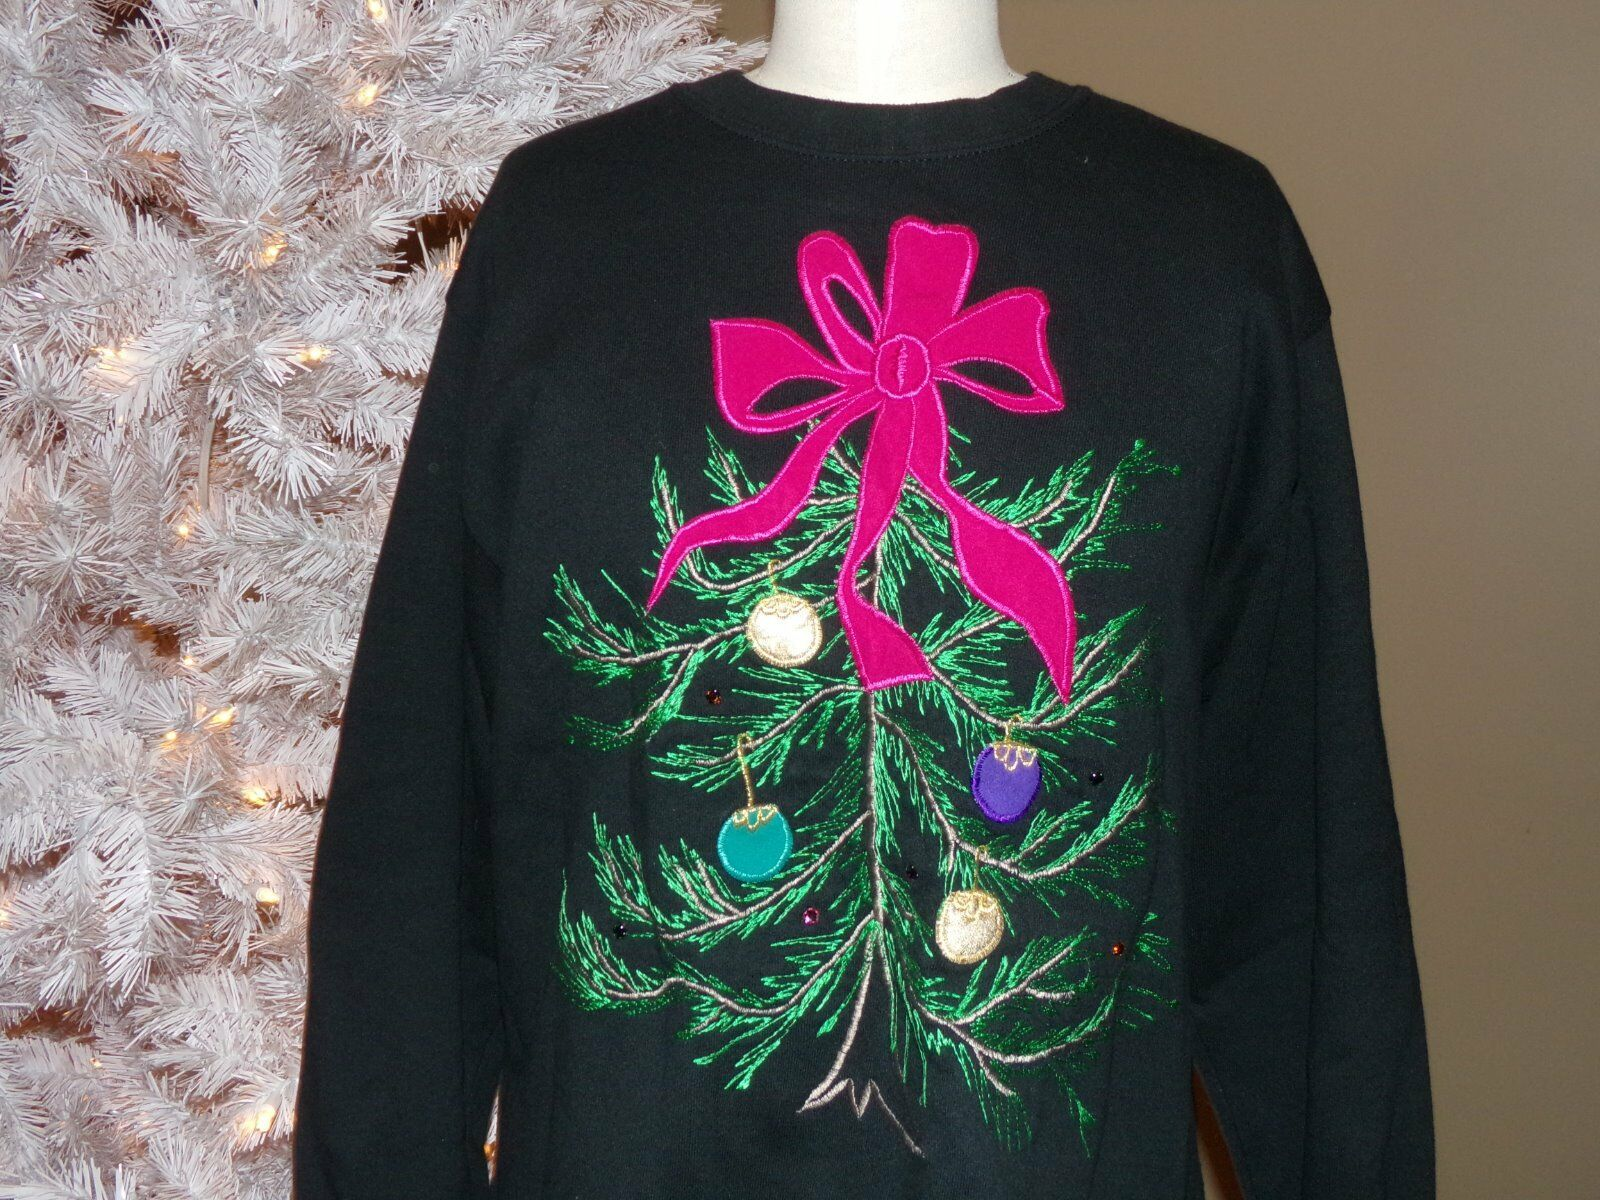 NEW Christmas SWEATSHIRT Embroidered TREE & ORNAMENTS Sparkly Rhinestones XL